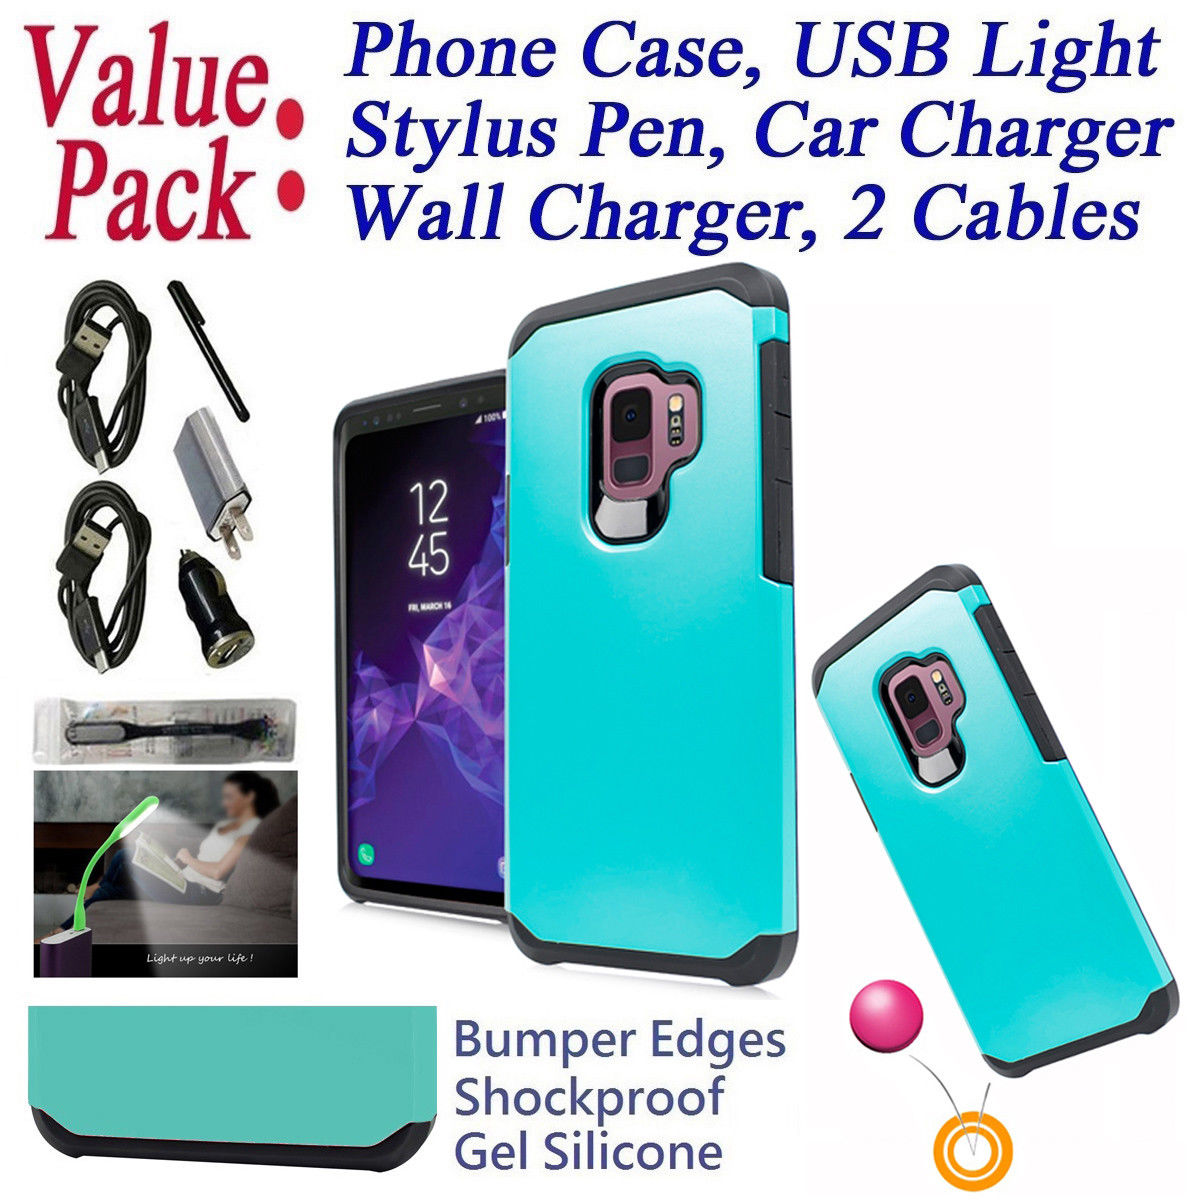 "Value Pack Cables + for 5.8"" Samsung S9 Galaxy S 9 G960 Case Phone Case Shock proof Edges Hybrid Layers Slim Bumper Scratch Shield Cover Emblem Neon"